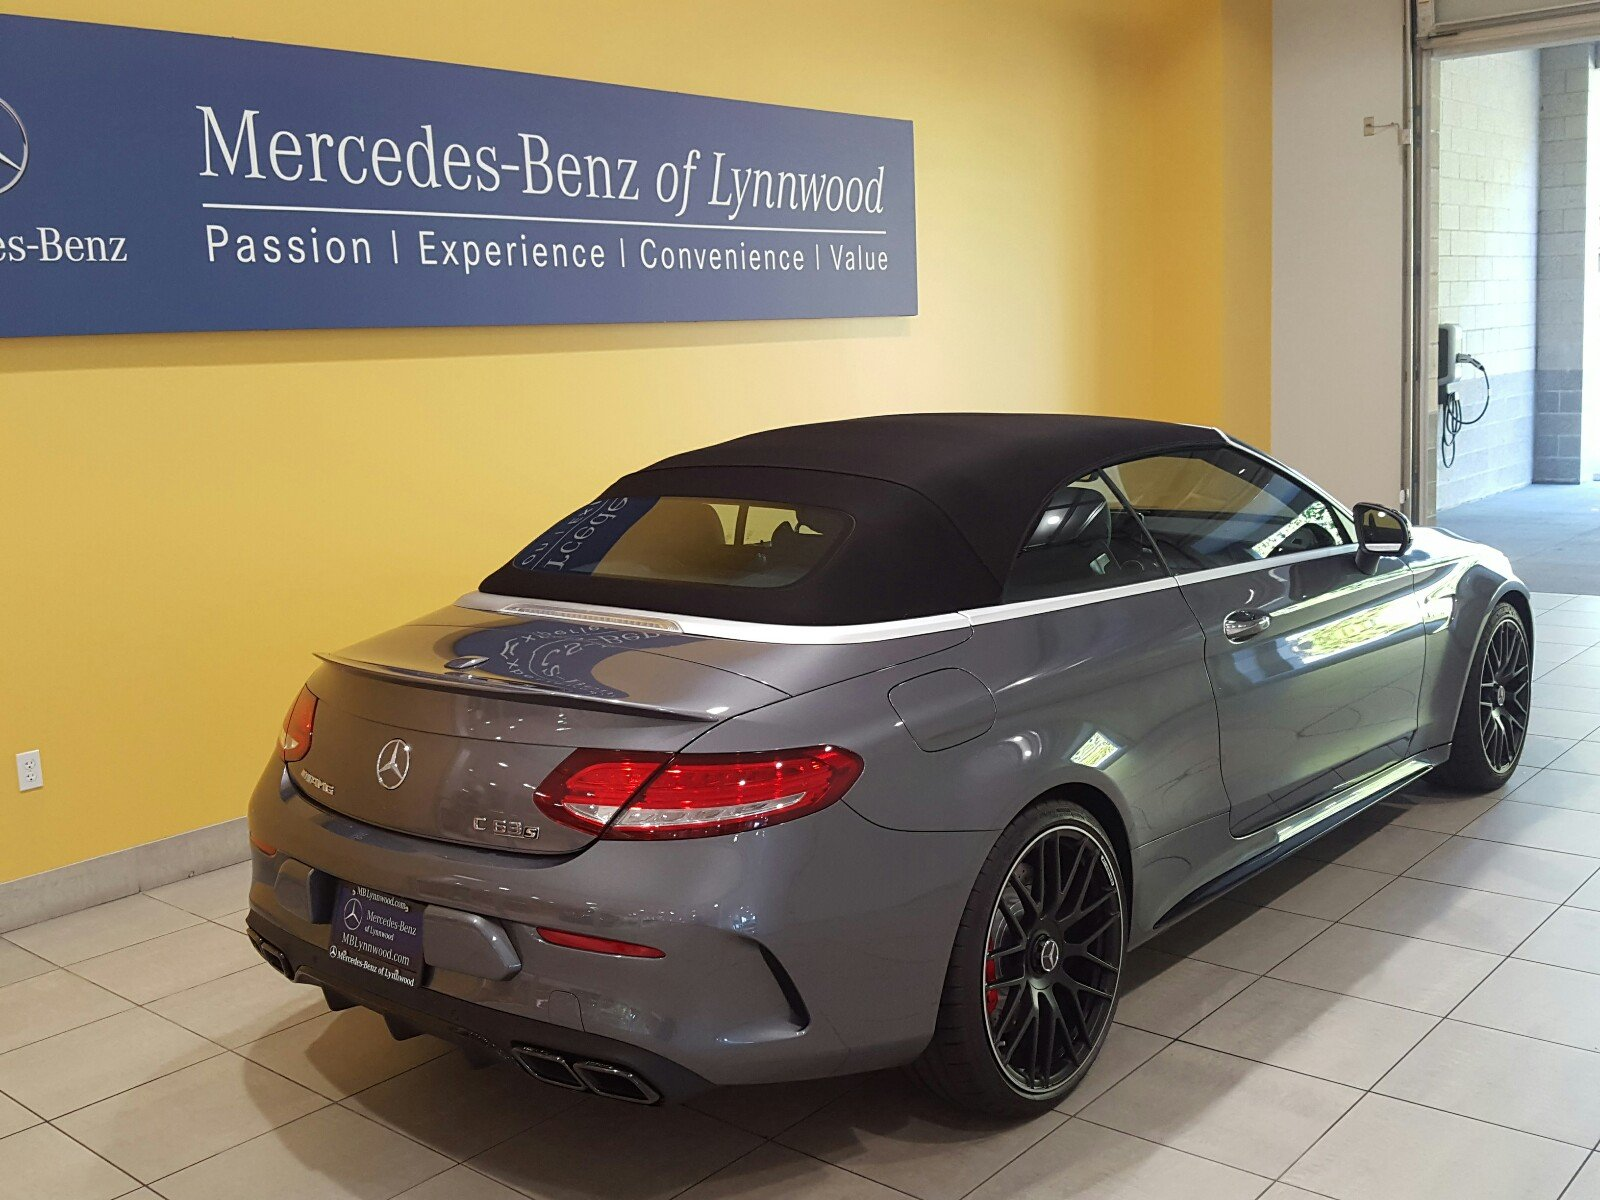 Pre owned 2018 mercedes benz c class amg c 63 s cabriolet for Mercedes benz c class pre owned